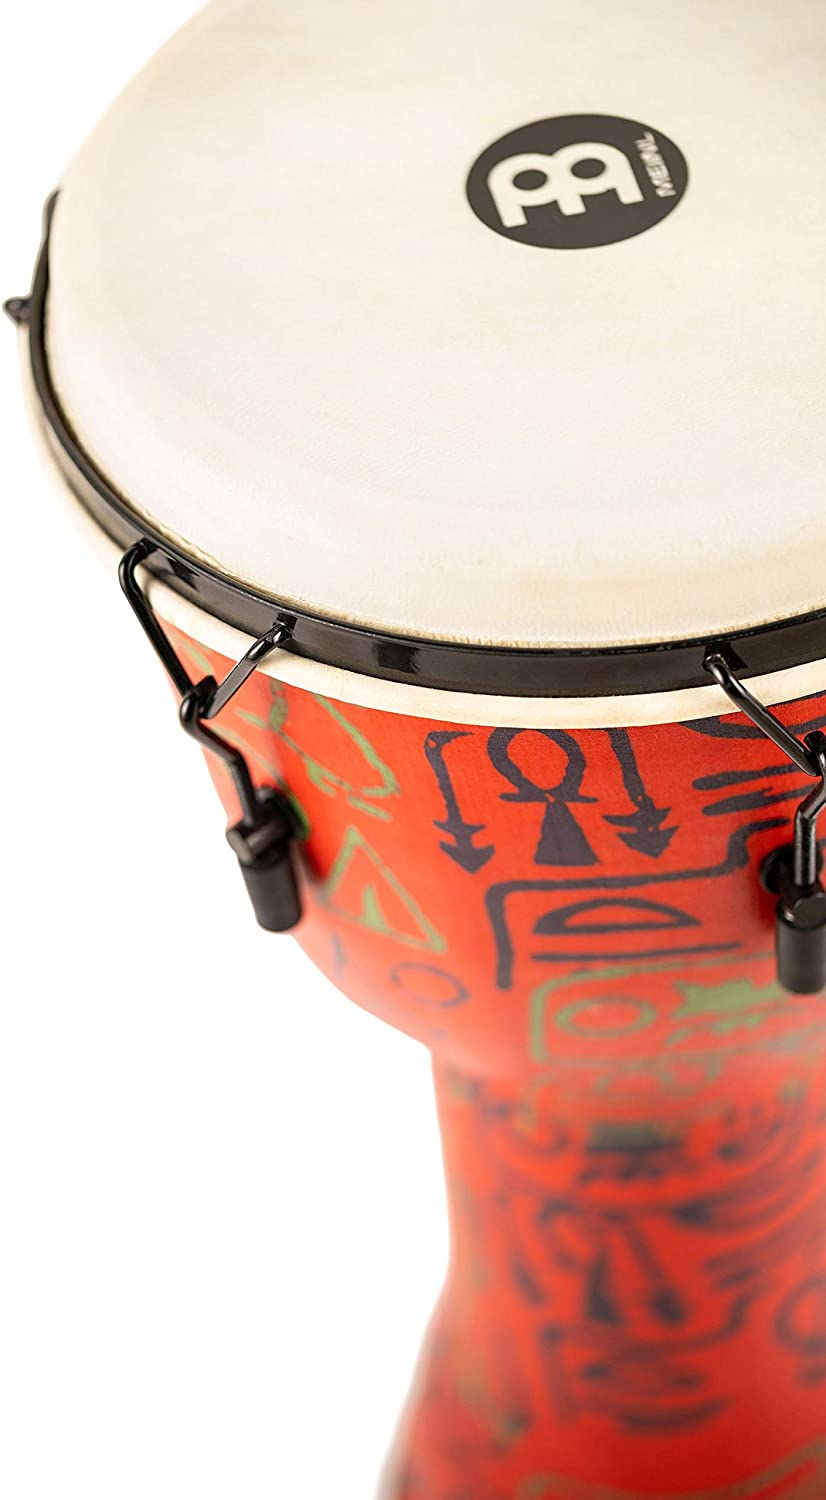 Meinl Percussion Travel Djembe with Synthetic Shell-NOT Made in CHINA-14 Extra Large Size Mechanically Tuned Goat Skin Head 14 Pharaohs Script XL PMDJ1-XL-G 2-Year Warranty